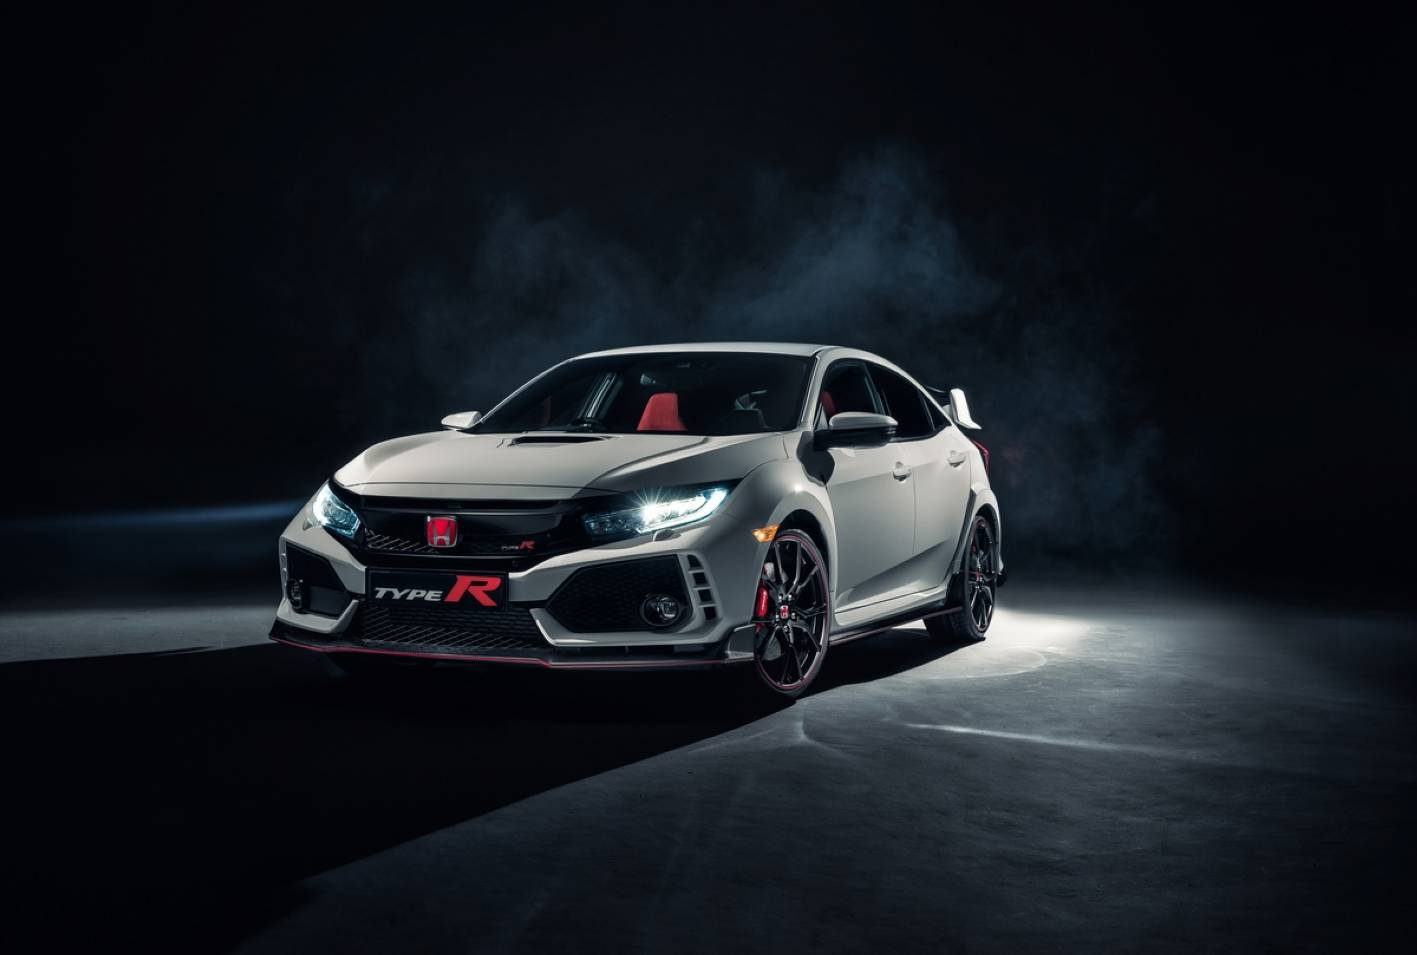 2018 honda civic type r unwrapped full details. Black Bedroom Furniture Sets. Home Design Ideas